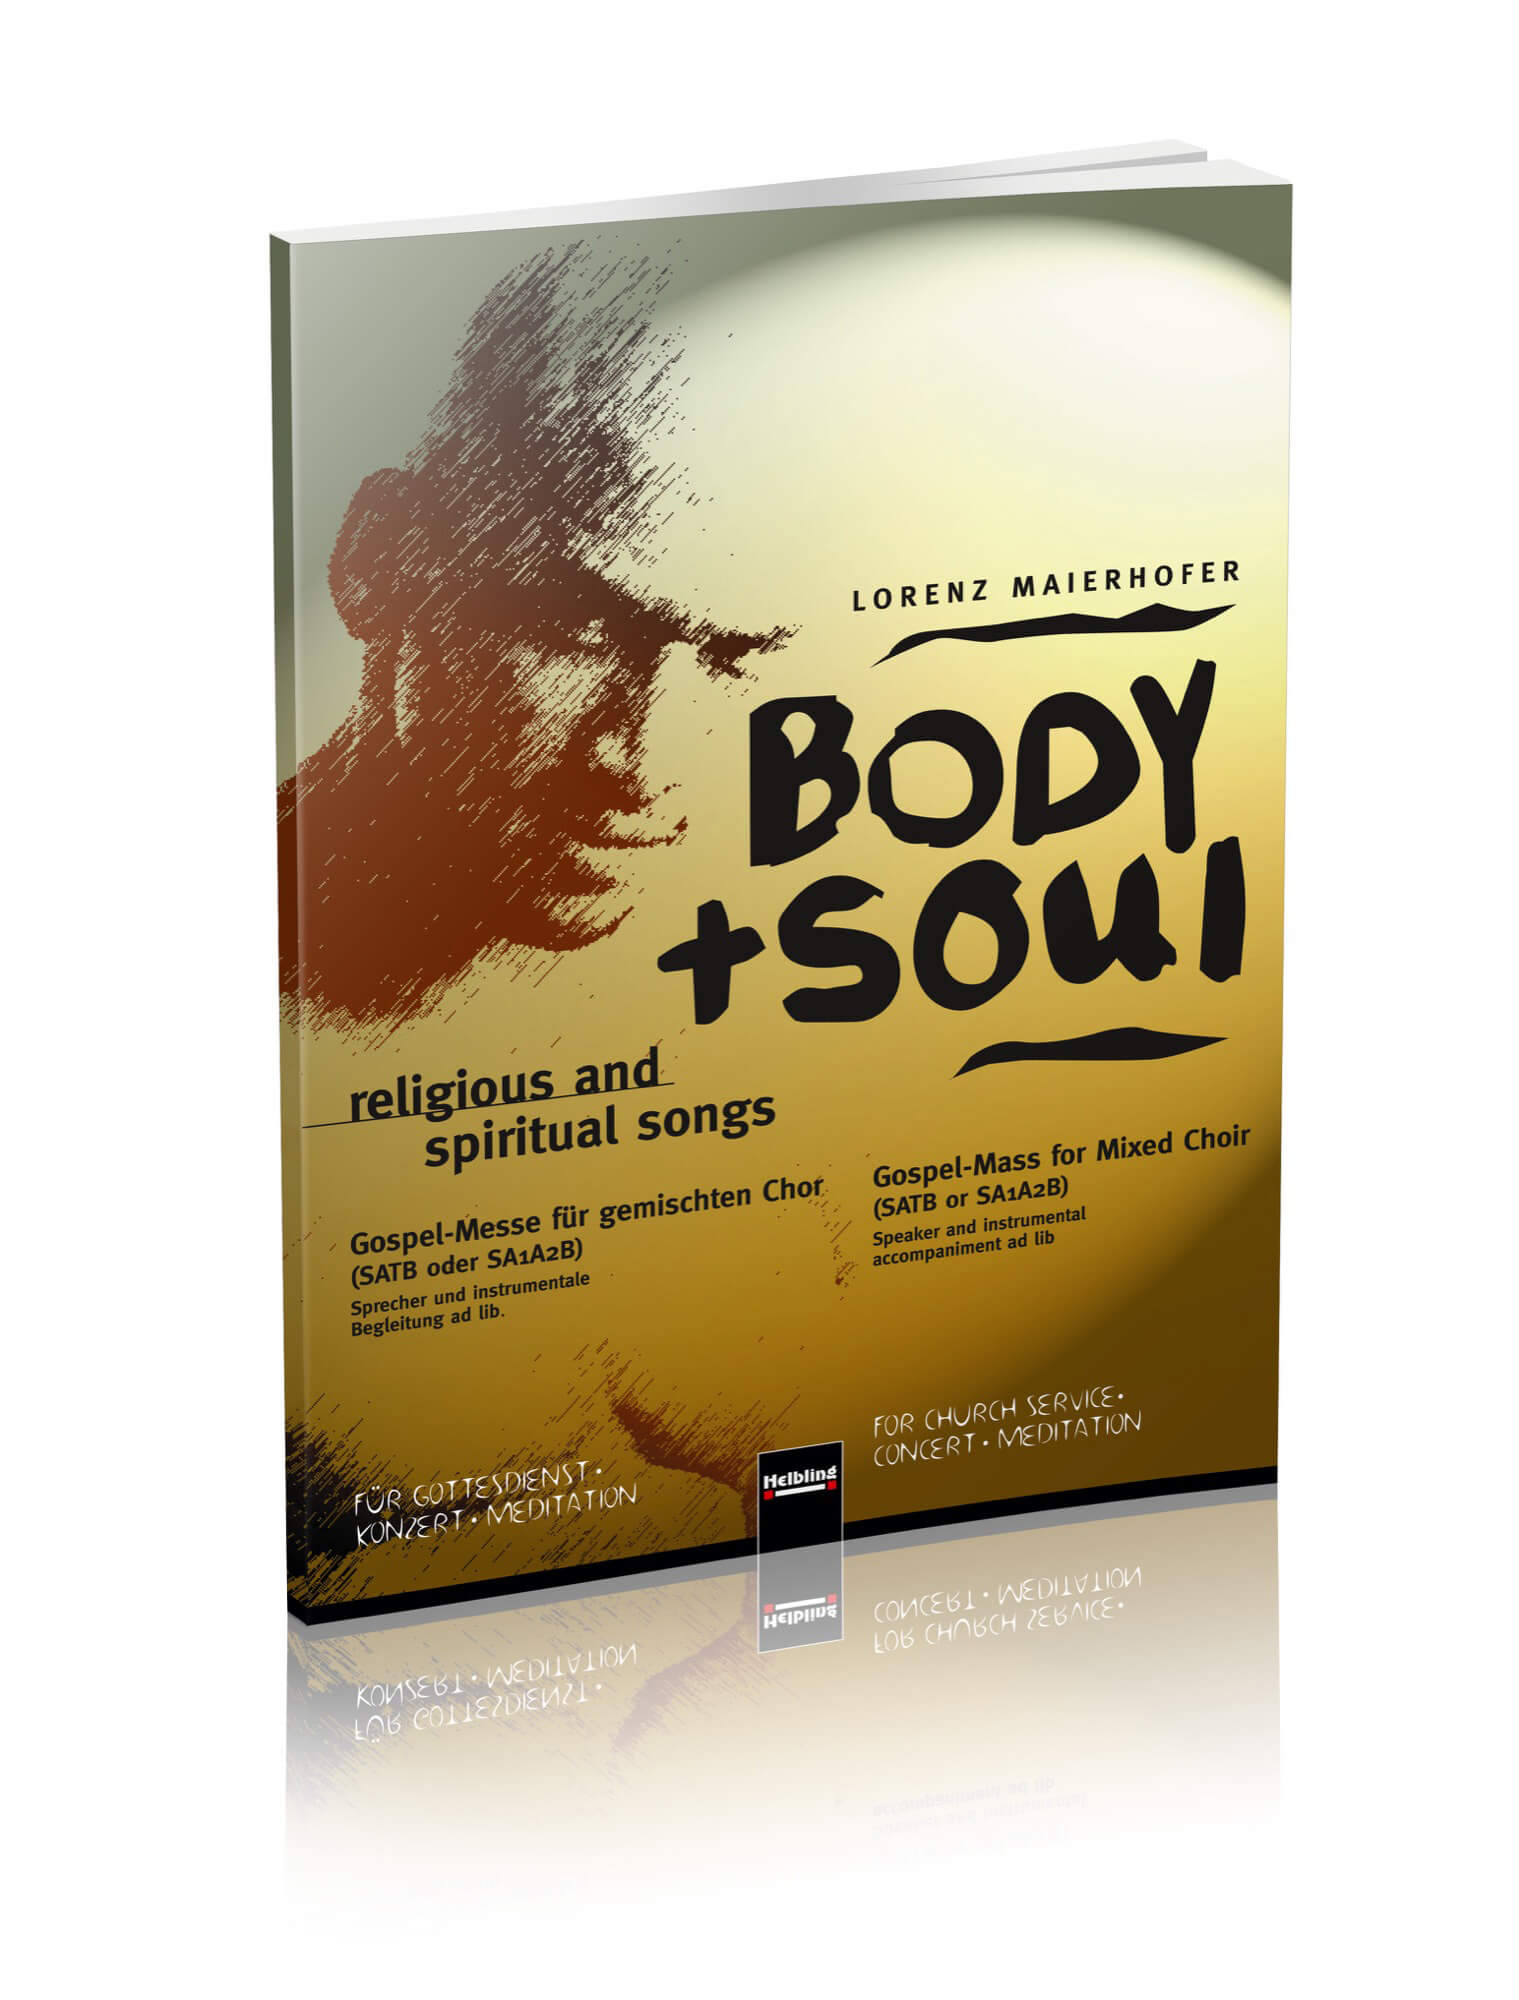 ▸ BODY + SOUL (GOSPEL-MESSE)